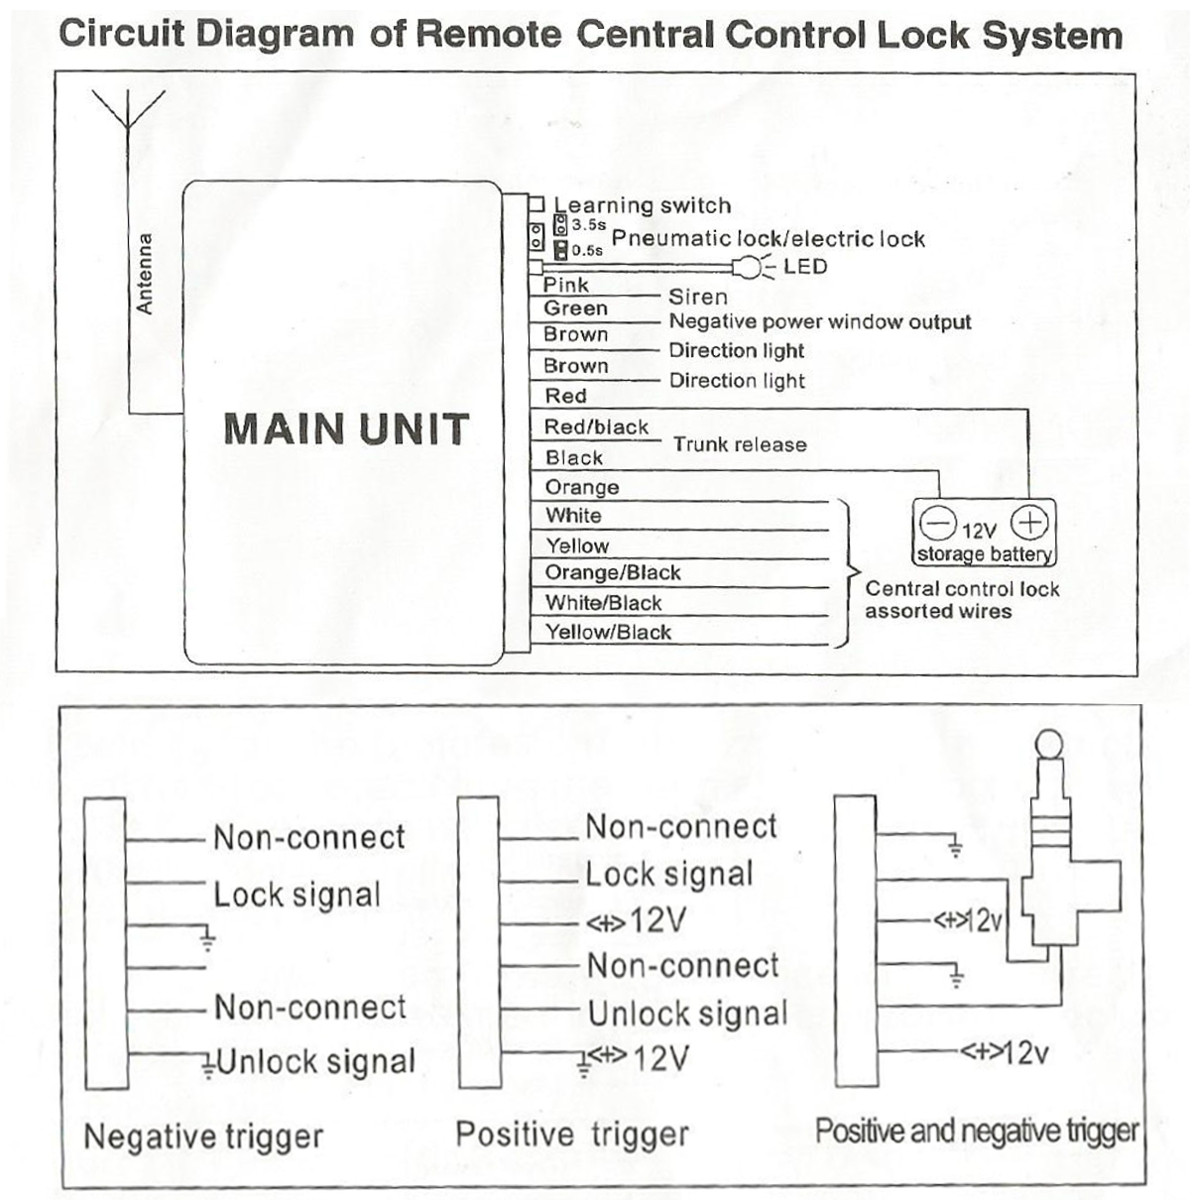 Central Locking Remote Control Wiring Diagram Switch Car Lock Keyless Entry System Security Ck009 043 On Vw Polo